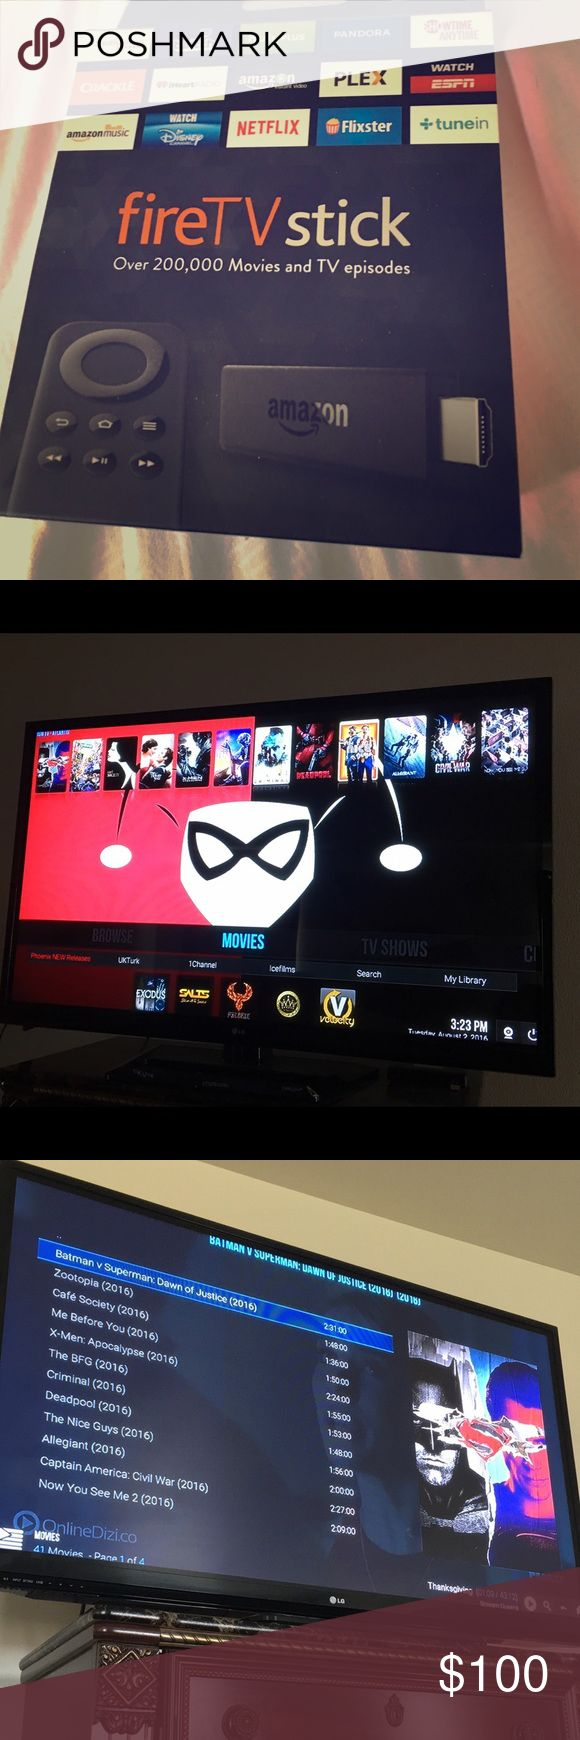 Fire stick loaded Fully loaded jail broken fire stick with a new software on it, watch 100000 plus movies including new releases, PPV, live TV, music and change up to 5 different themes! For free!!! Accessories